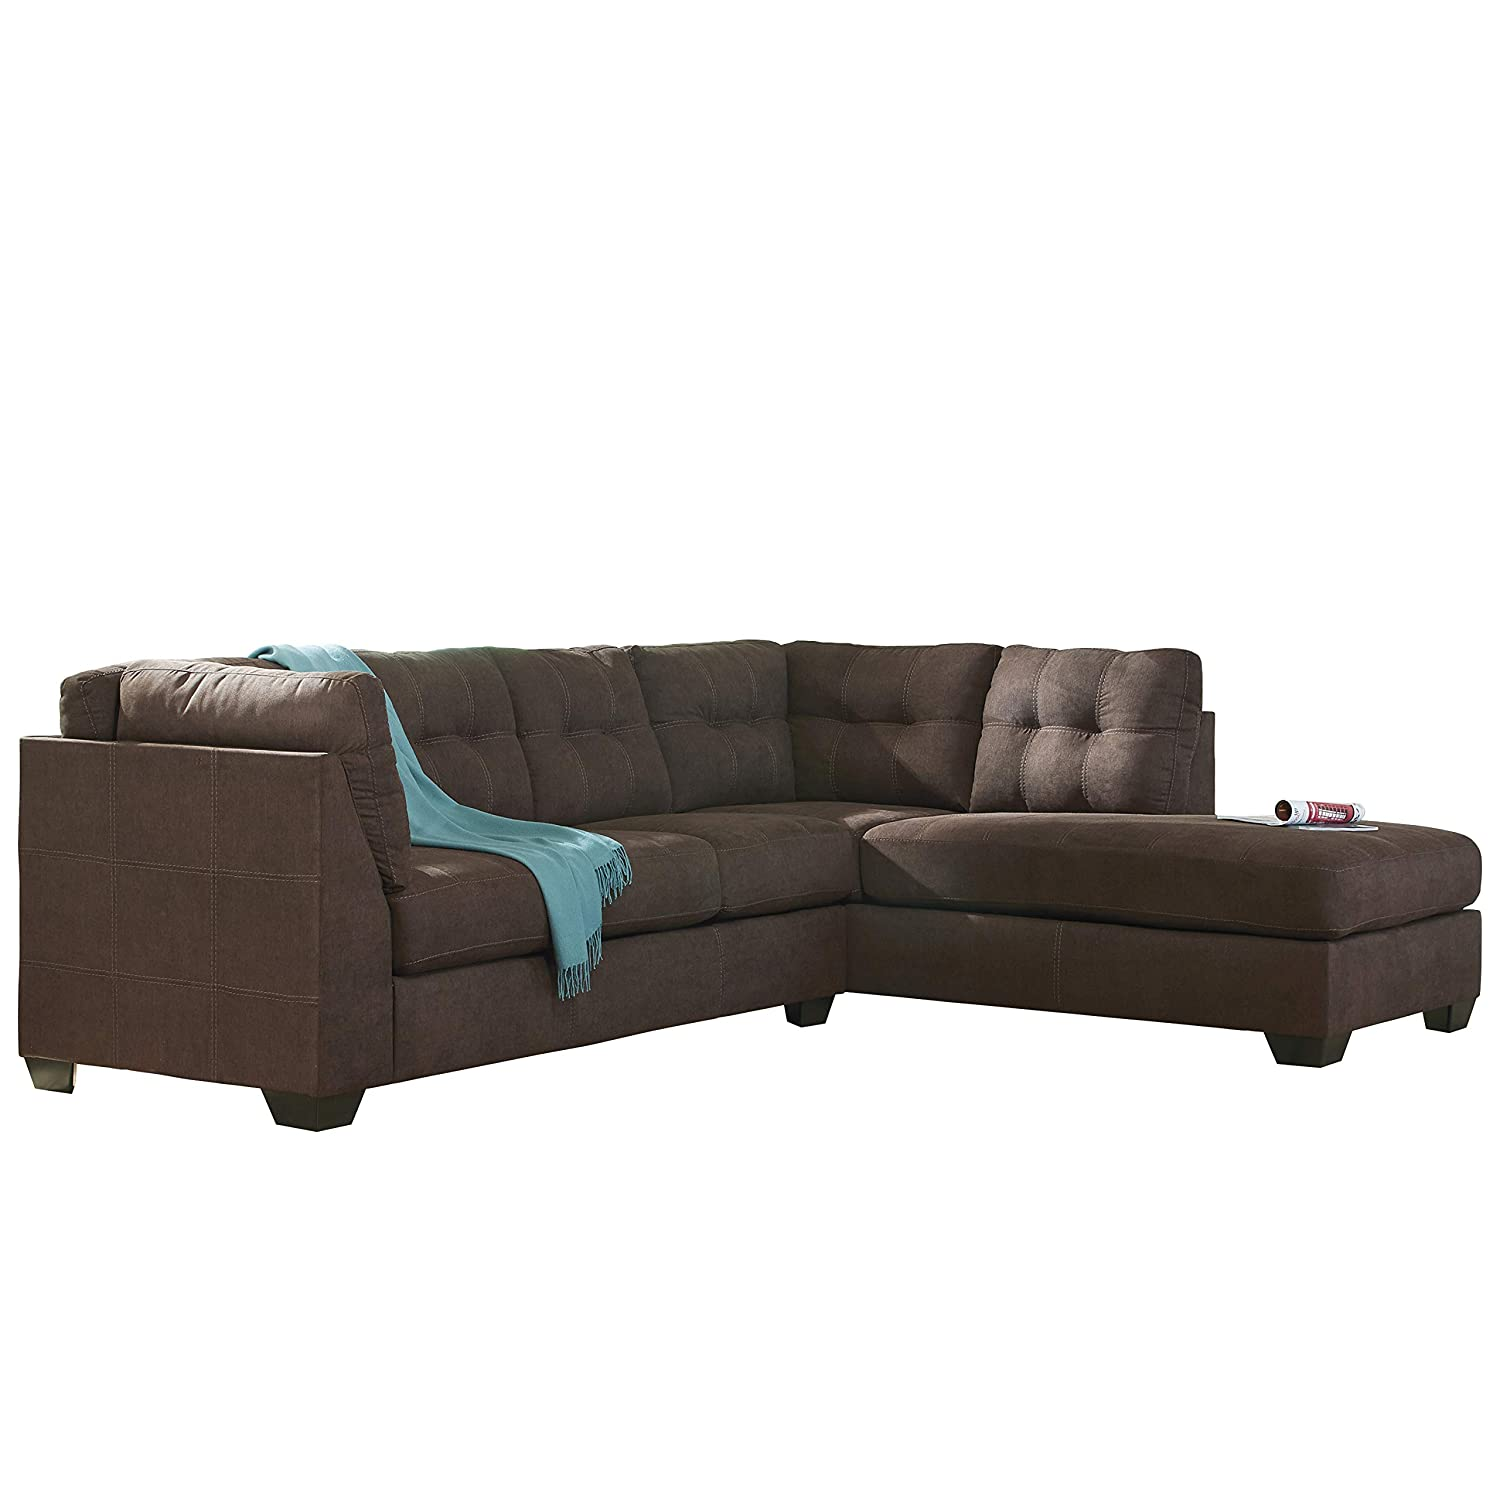 Prime Flash Furniture Benchcraft Maier Sectional With Right Side Facing Chaise In Walnut Microfiber Frankydiablos Diy Chair Ideas Frankydiabloscom